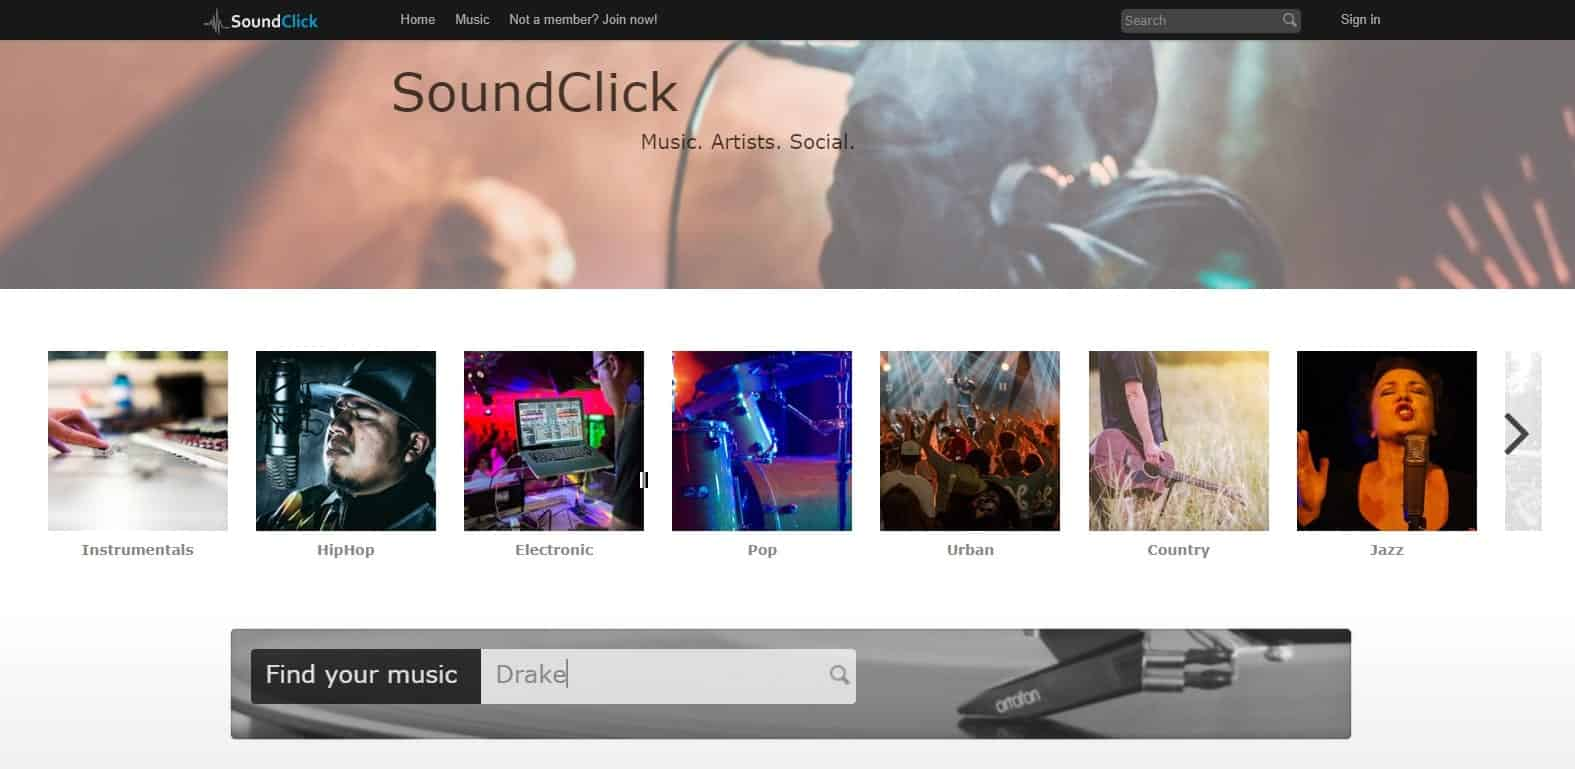 One of the best site for downloading music from artist's site itself